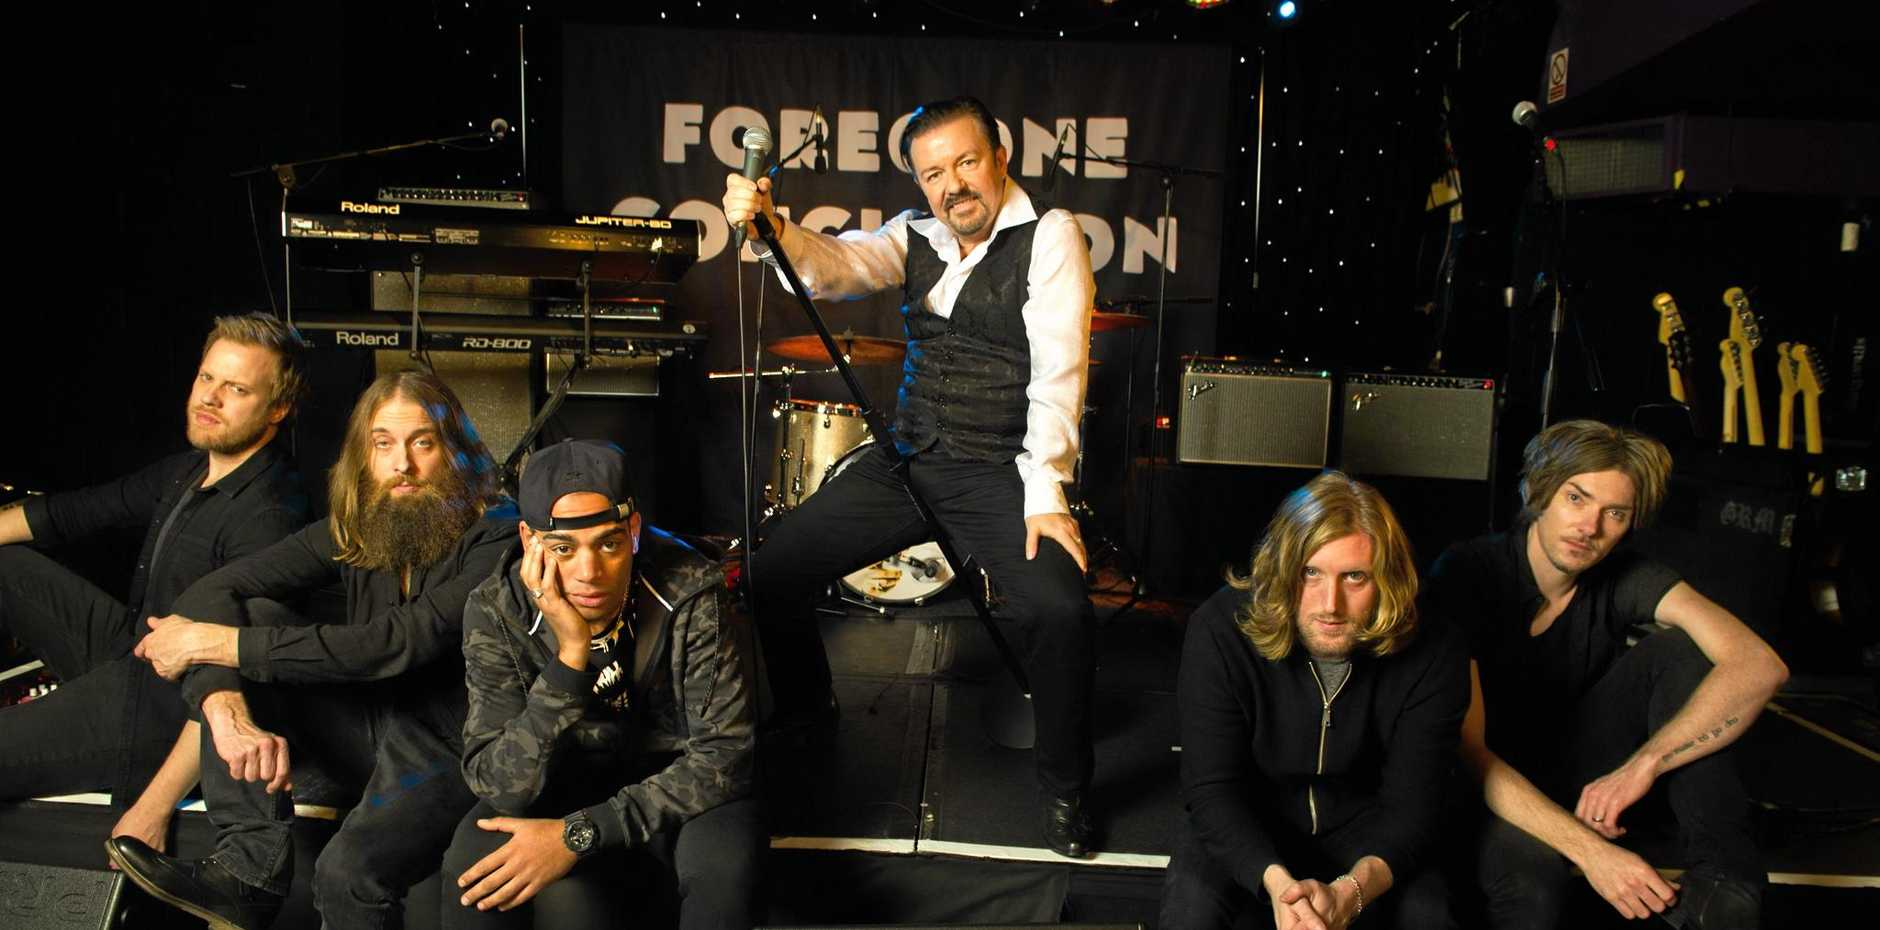 Ricky Gervais, Ben Bailey Smith and Foregone Conclusion (Steve Clarke, Andy Burrows, Stuart Baxter Wilkinson, Michael Clarke) in a scene from David Brent: Life on the Road.